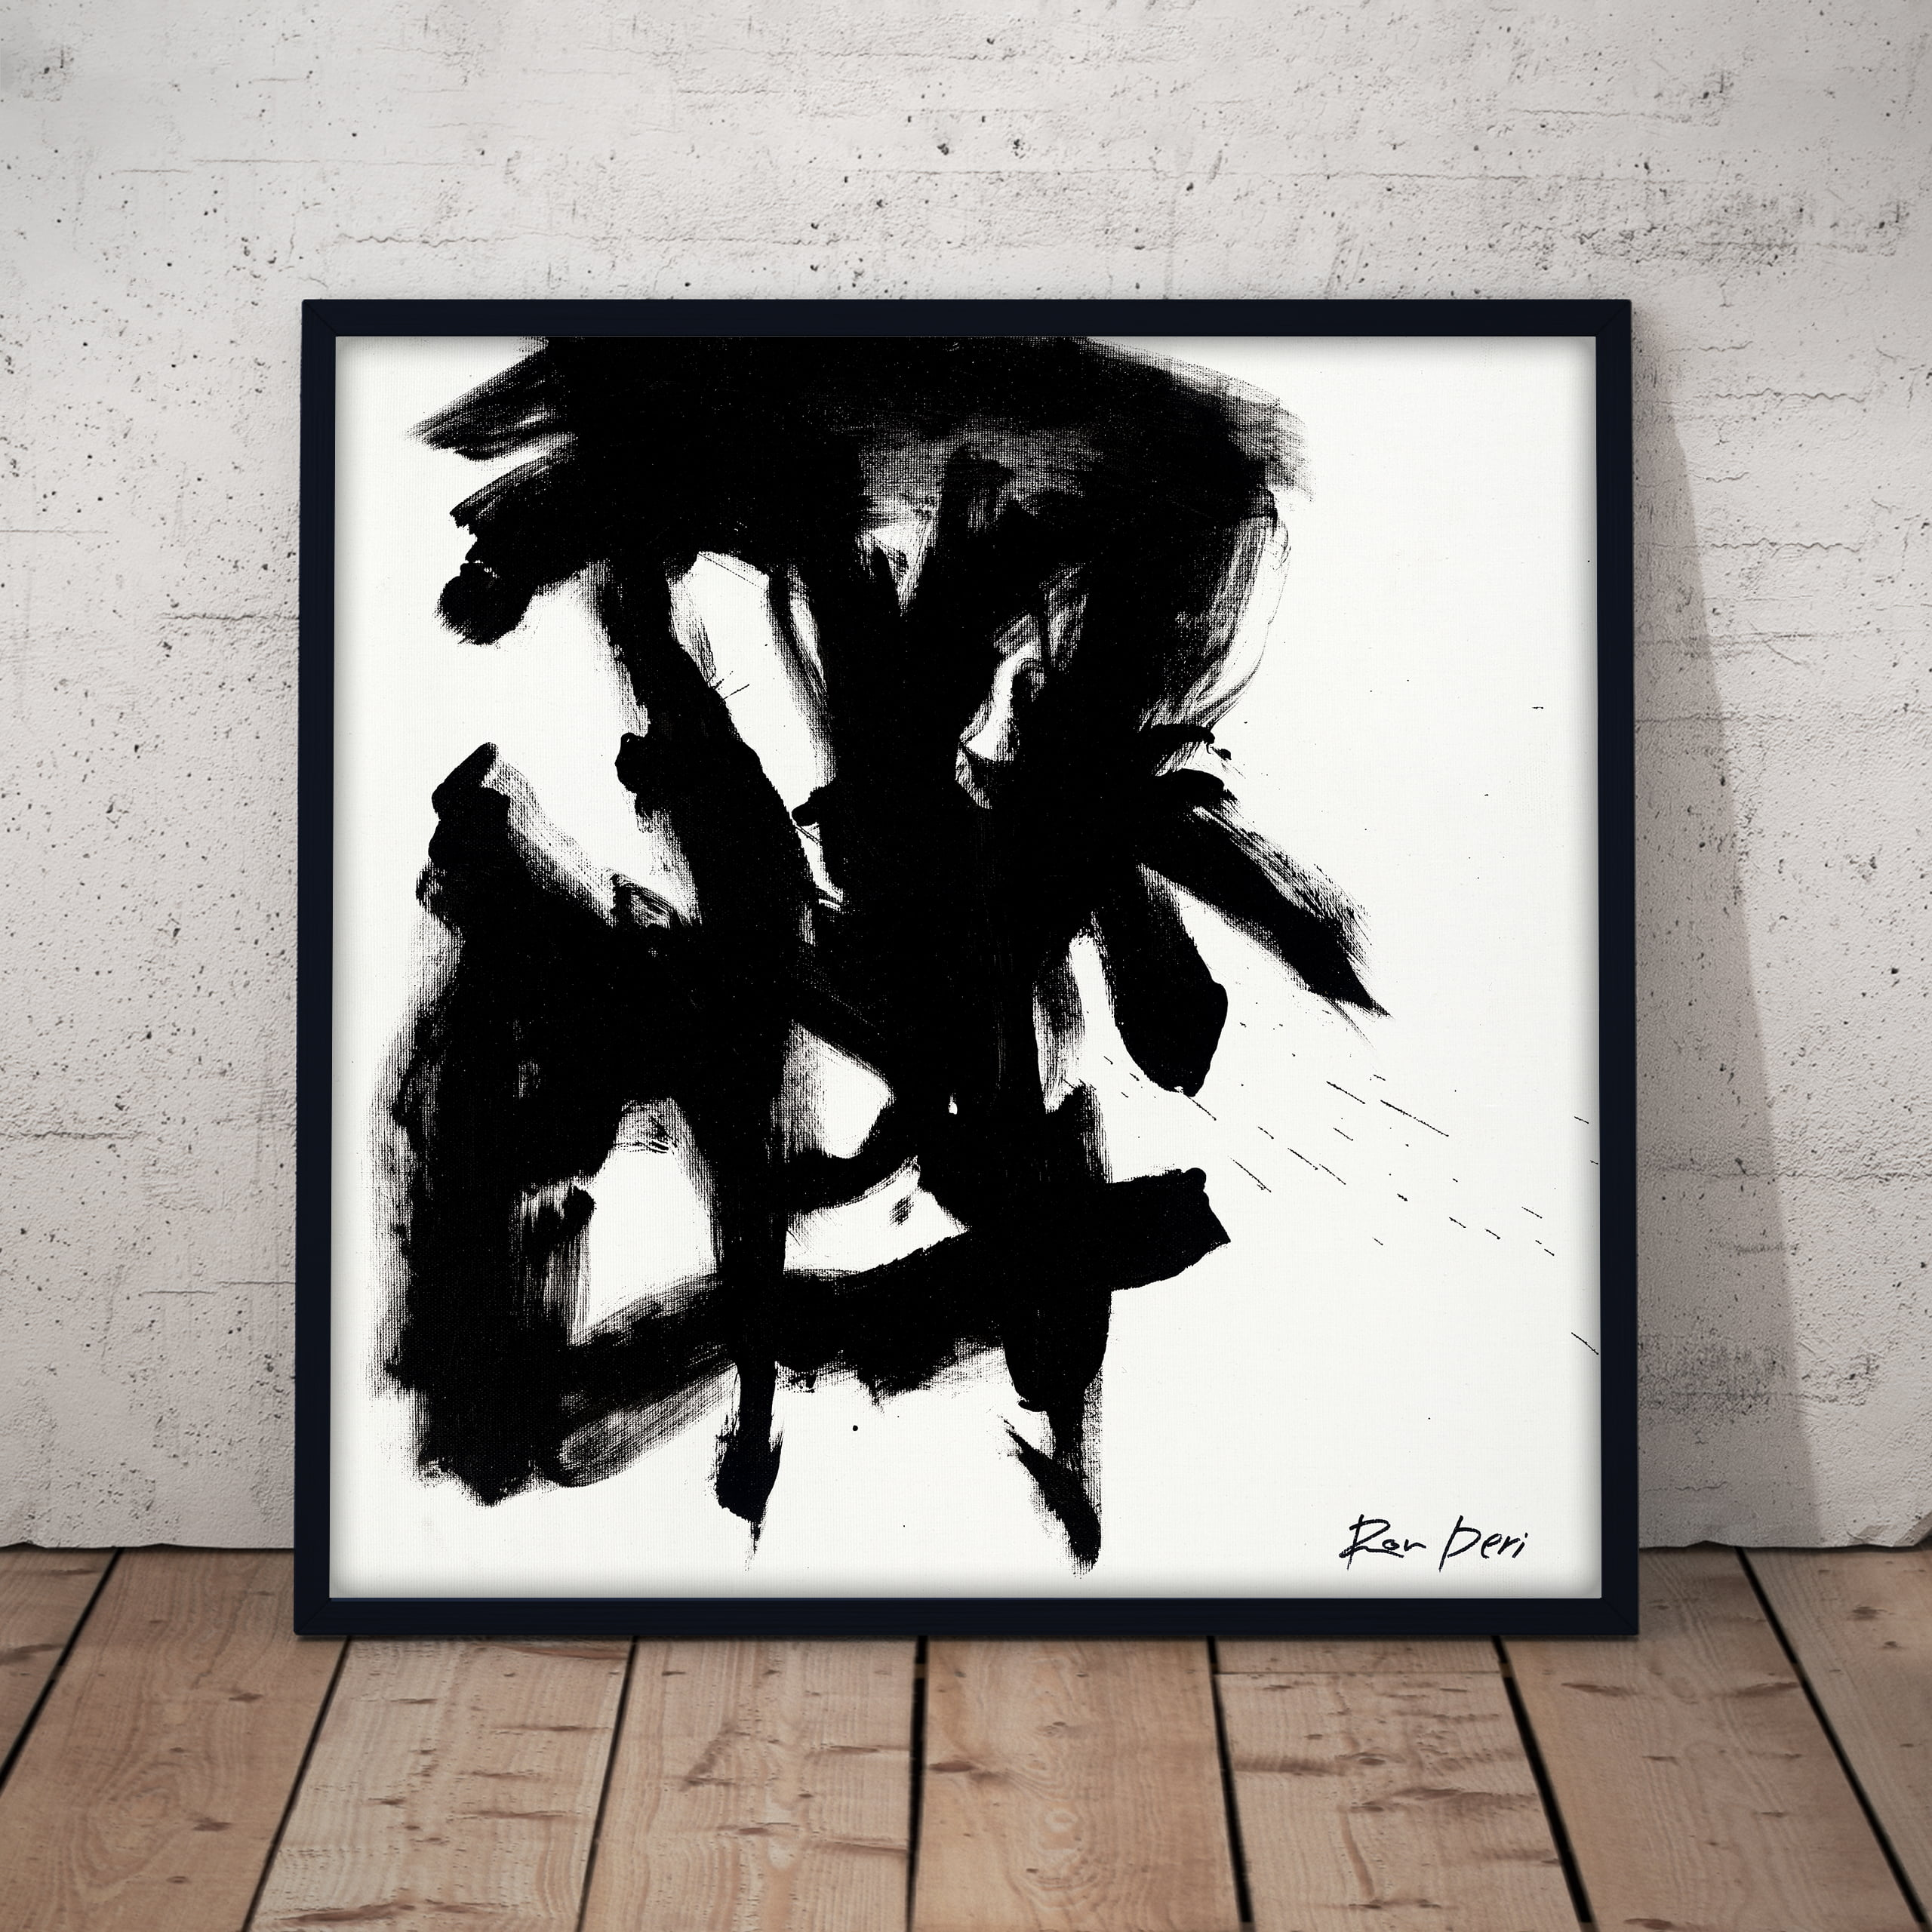 stain black and white monochrome abstract art print by ron deri